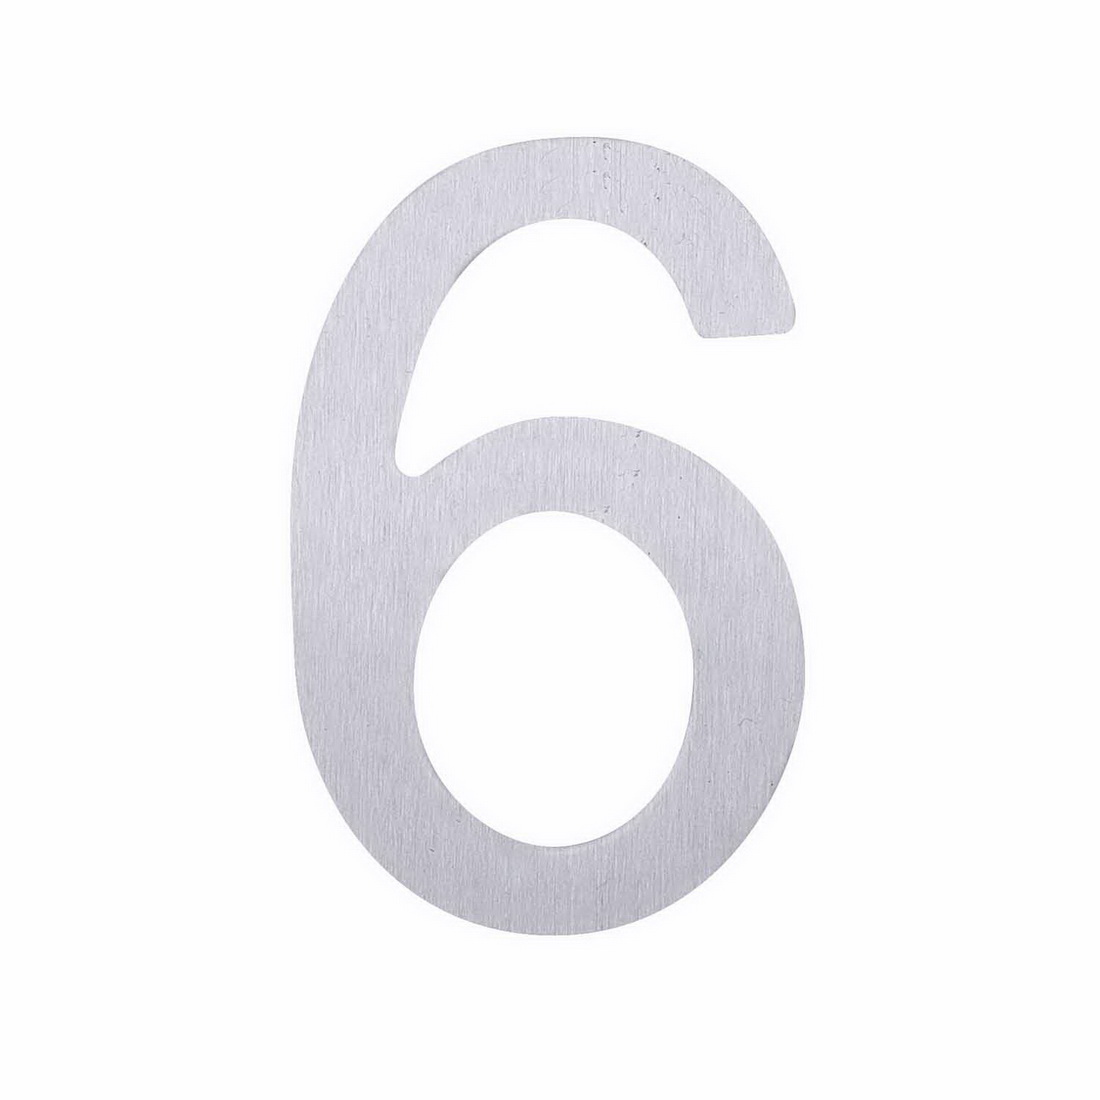 Elements Hardware Adhesive Number 6 Stainless Steel 76mm 5367-6-SS